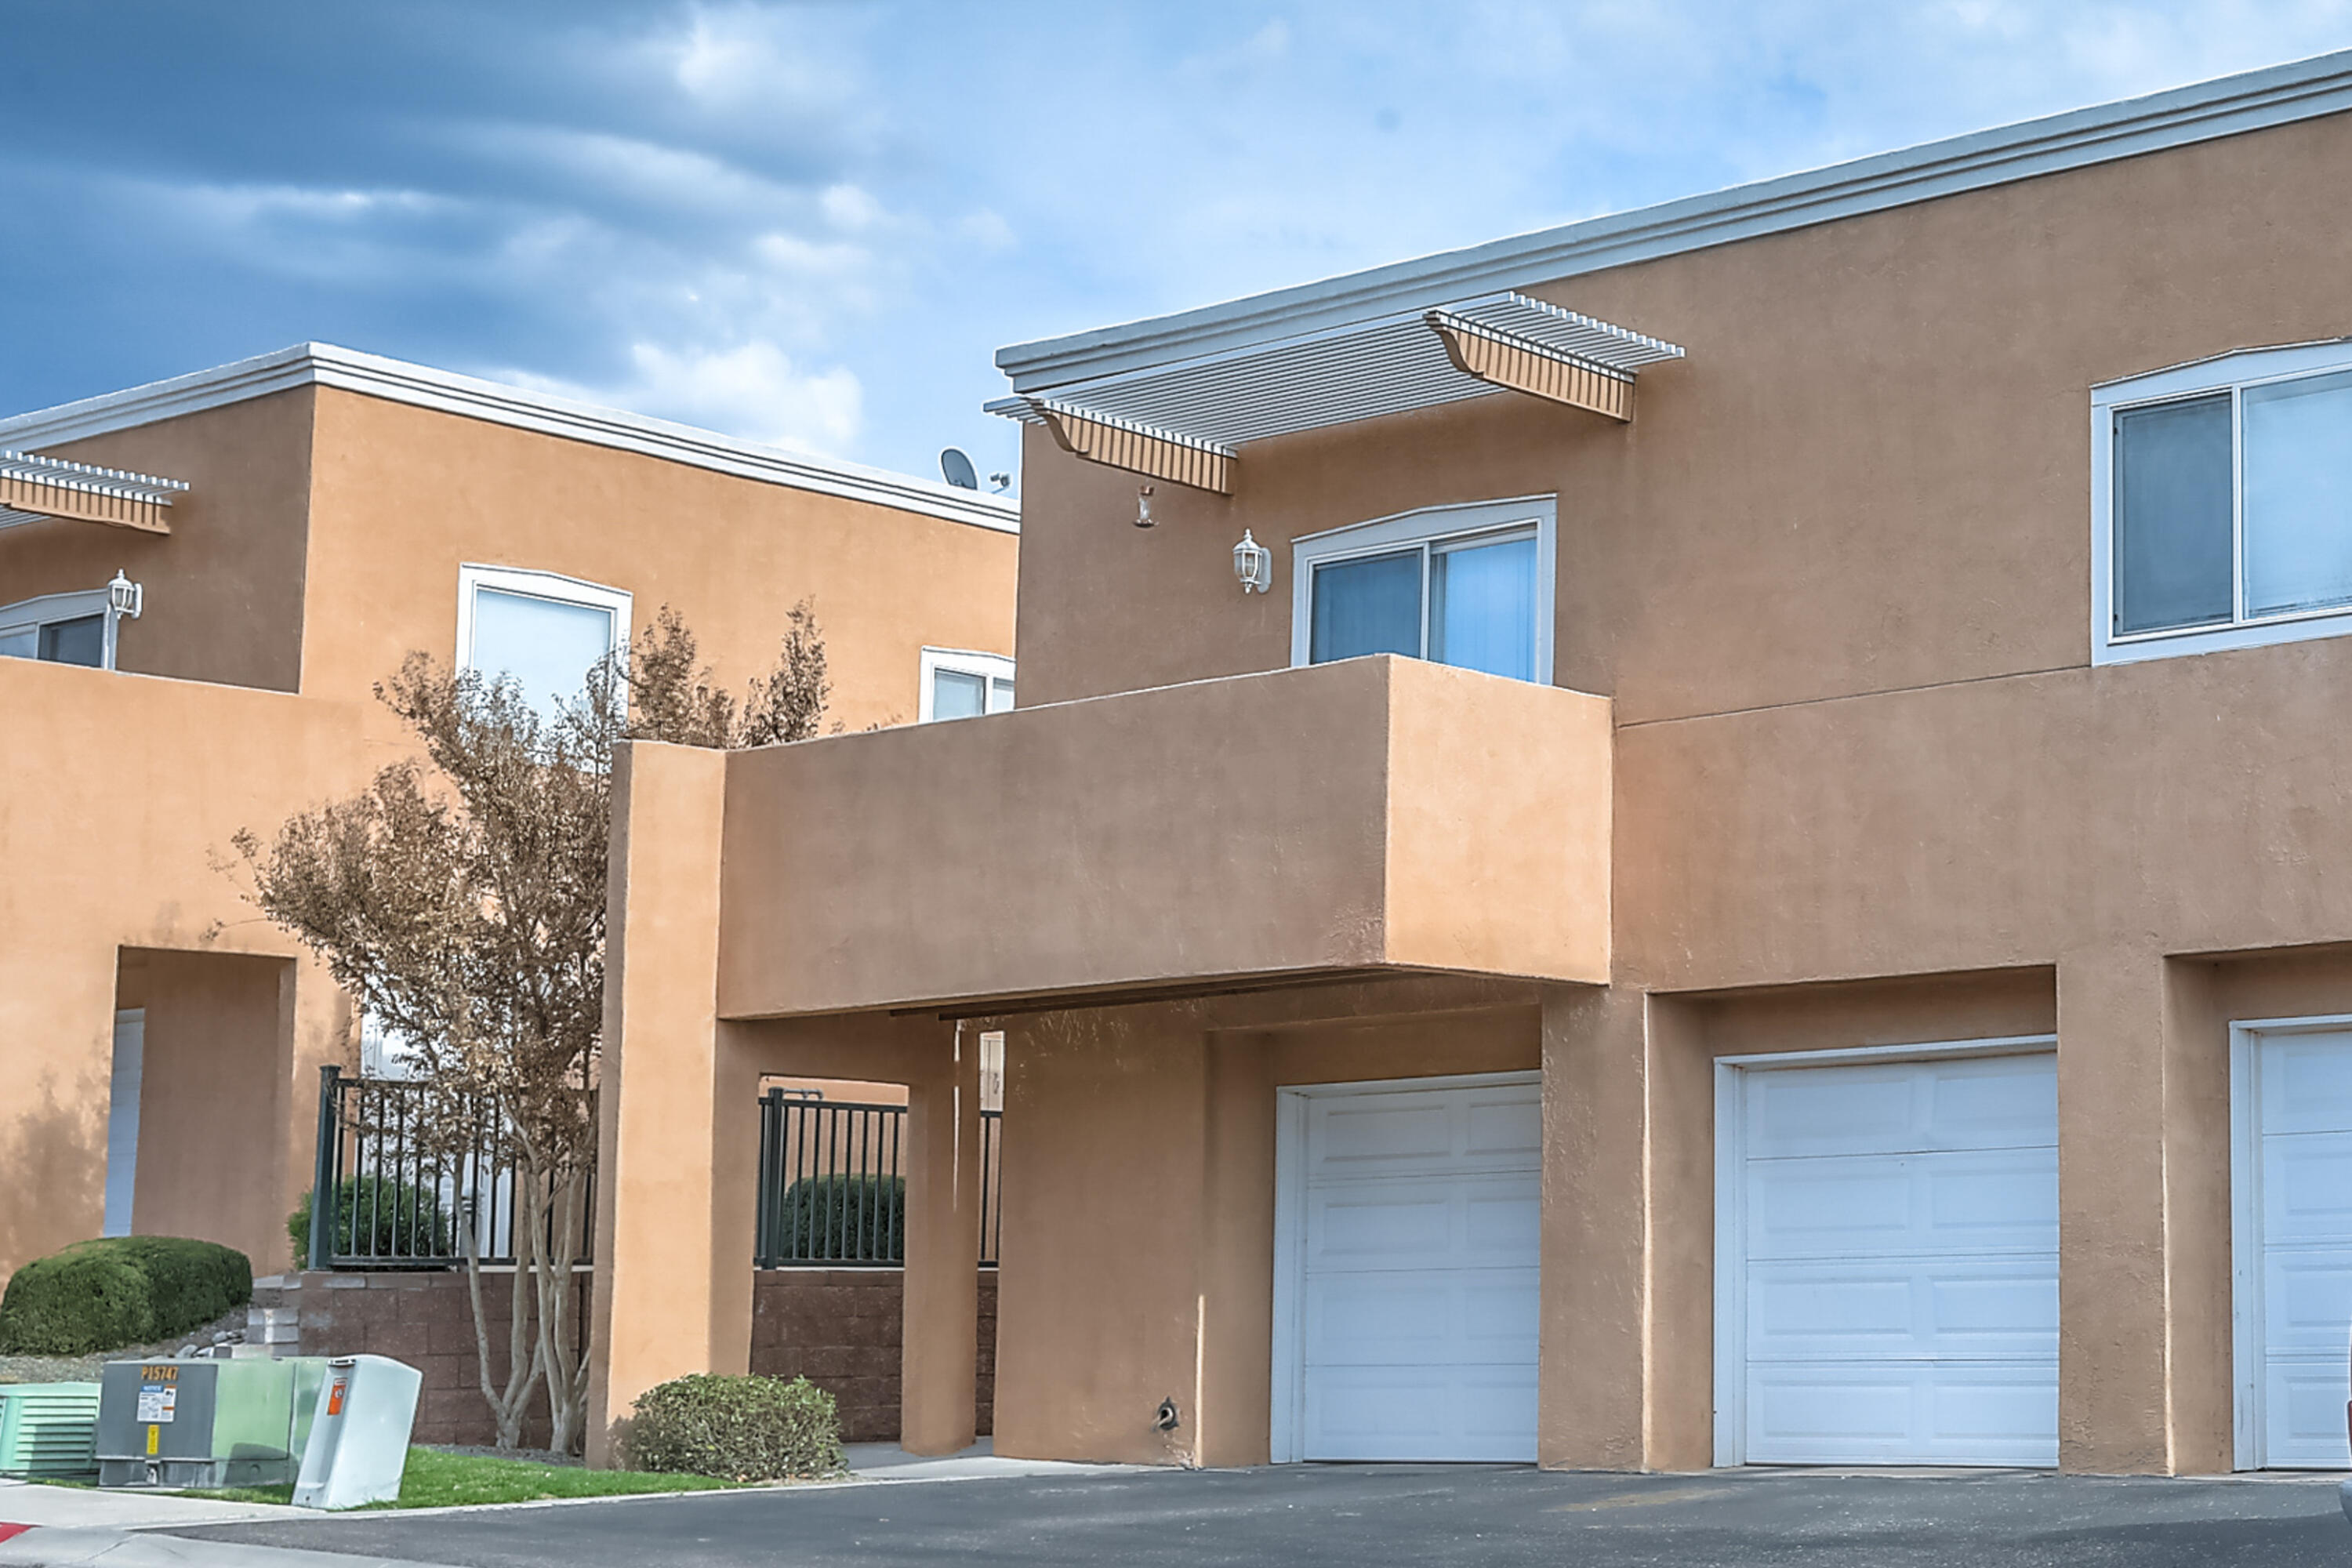 This is a lovely condo in the gated Oso Park neighborhood.  It has a nice open concept with 2 bedrooms and 2 bathrooms.  The living room also has an outdoor patio with incredible views of the Sandia Mountains.  In the kitchen you'll find a breakfast nook, bar area ,gas range, and a large walk in pantry.  The MasterCool unit is new and so is the dishwasher and a new foam roof was put on in 2017.  The seller is willing to leave the washer and dryer also. The HOA covers the common area greens, the roof, insurance, the water bill, the streets, and gate.  This unit is upstairs with a 1 car garage below.  There is not a yard but there is a ton of great landscaping and small parks in the community.  It's walking distance from CNM, parks, restaurants and more!